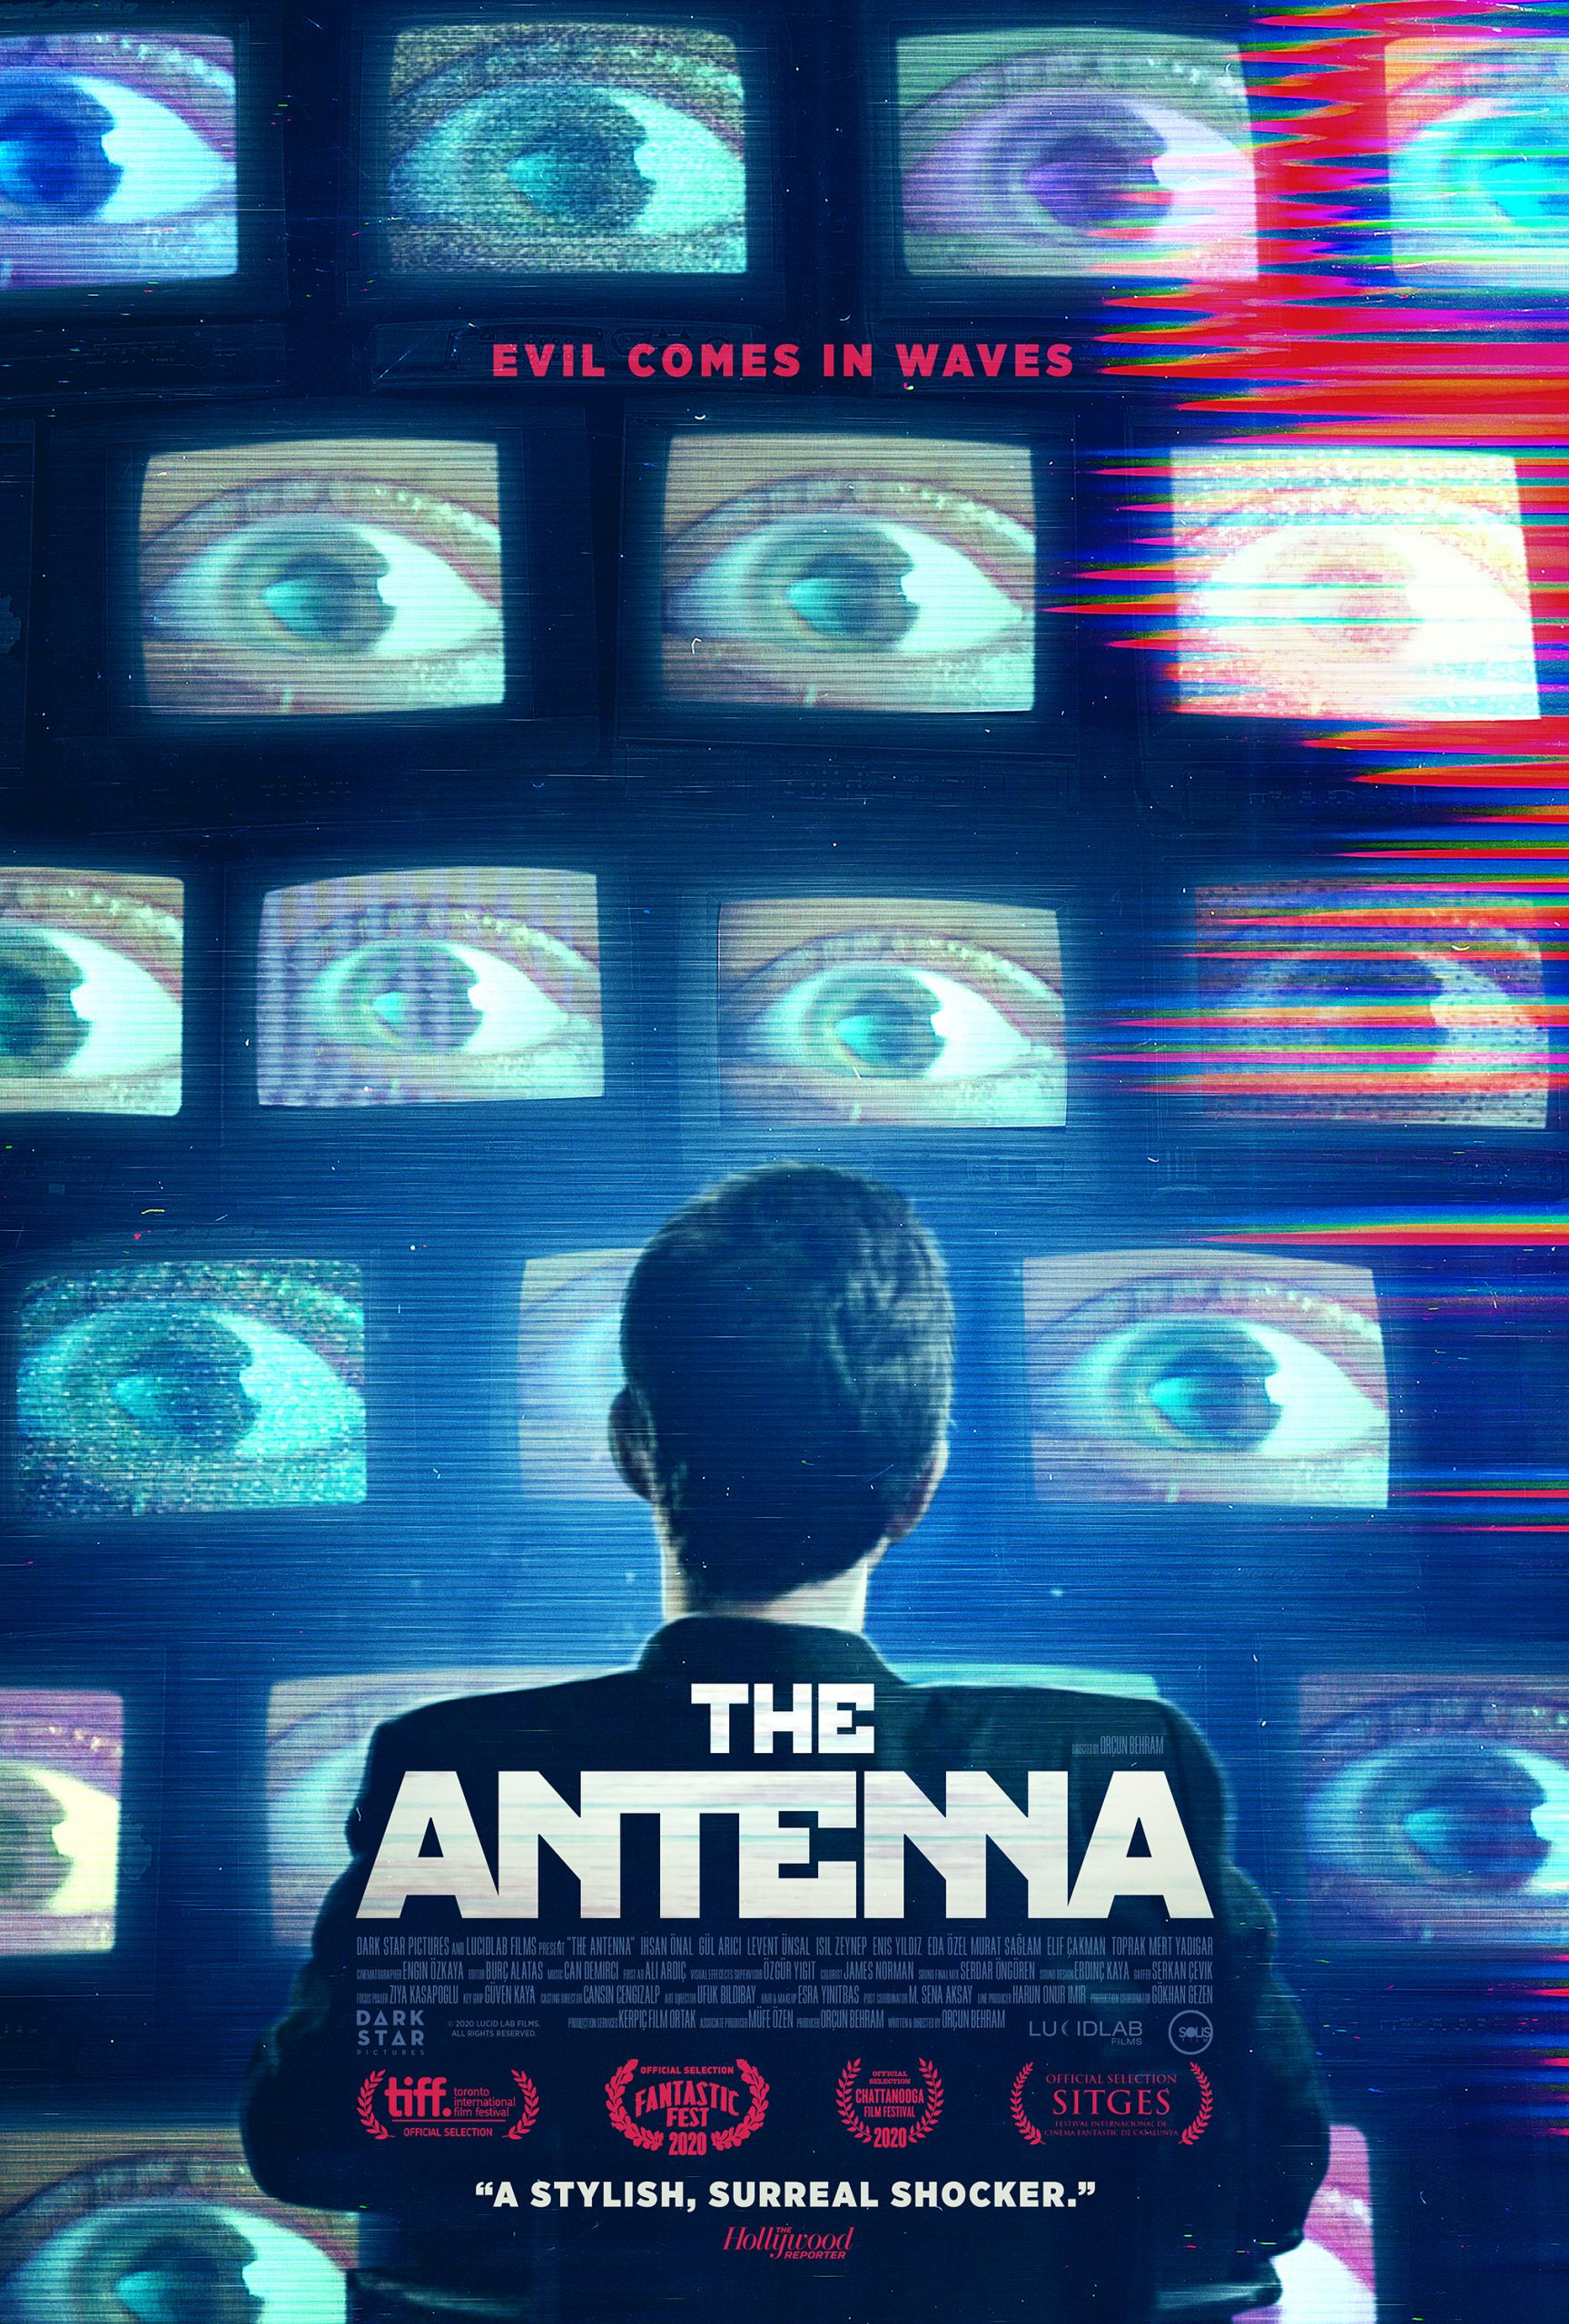 The Antenna Image